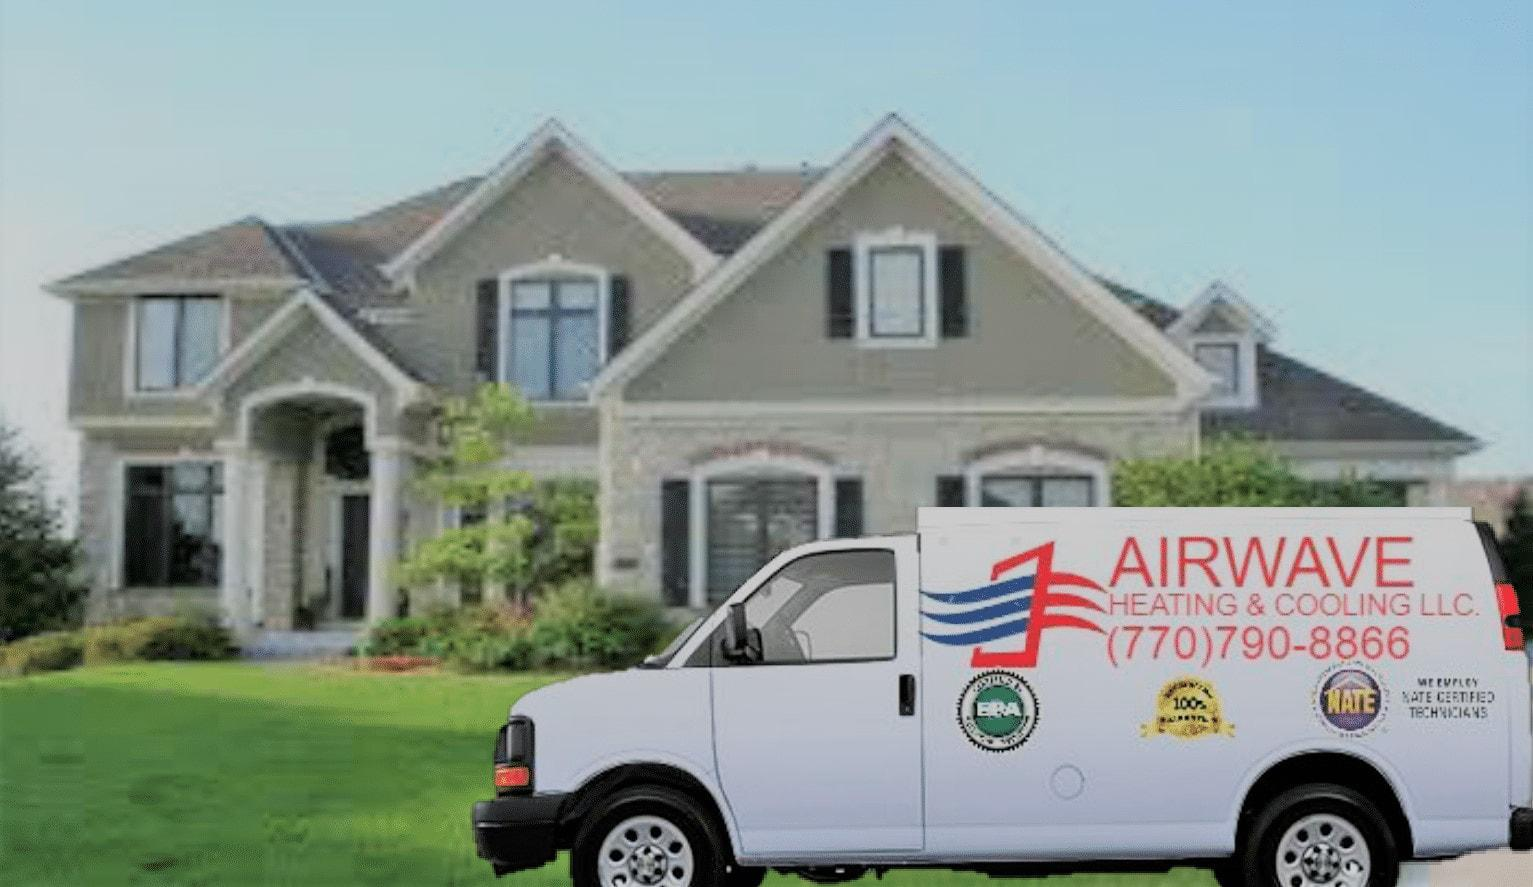 Airwave heating and cooling llc